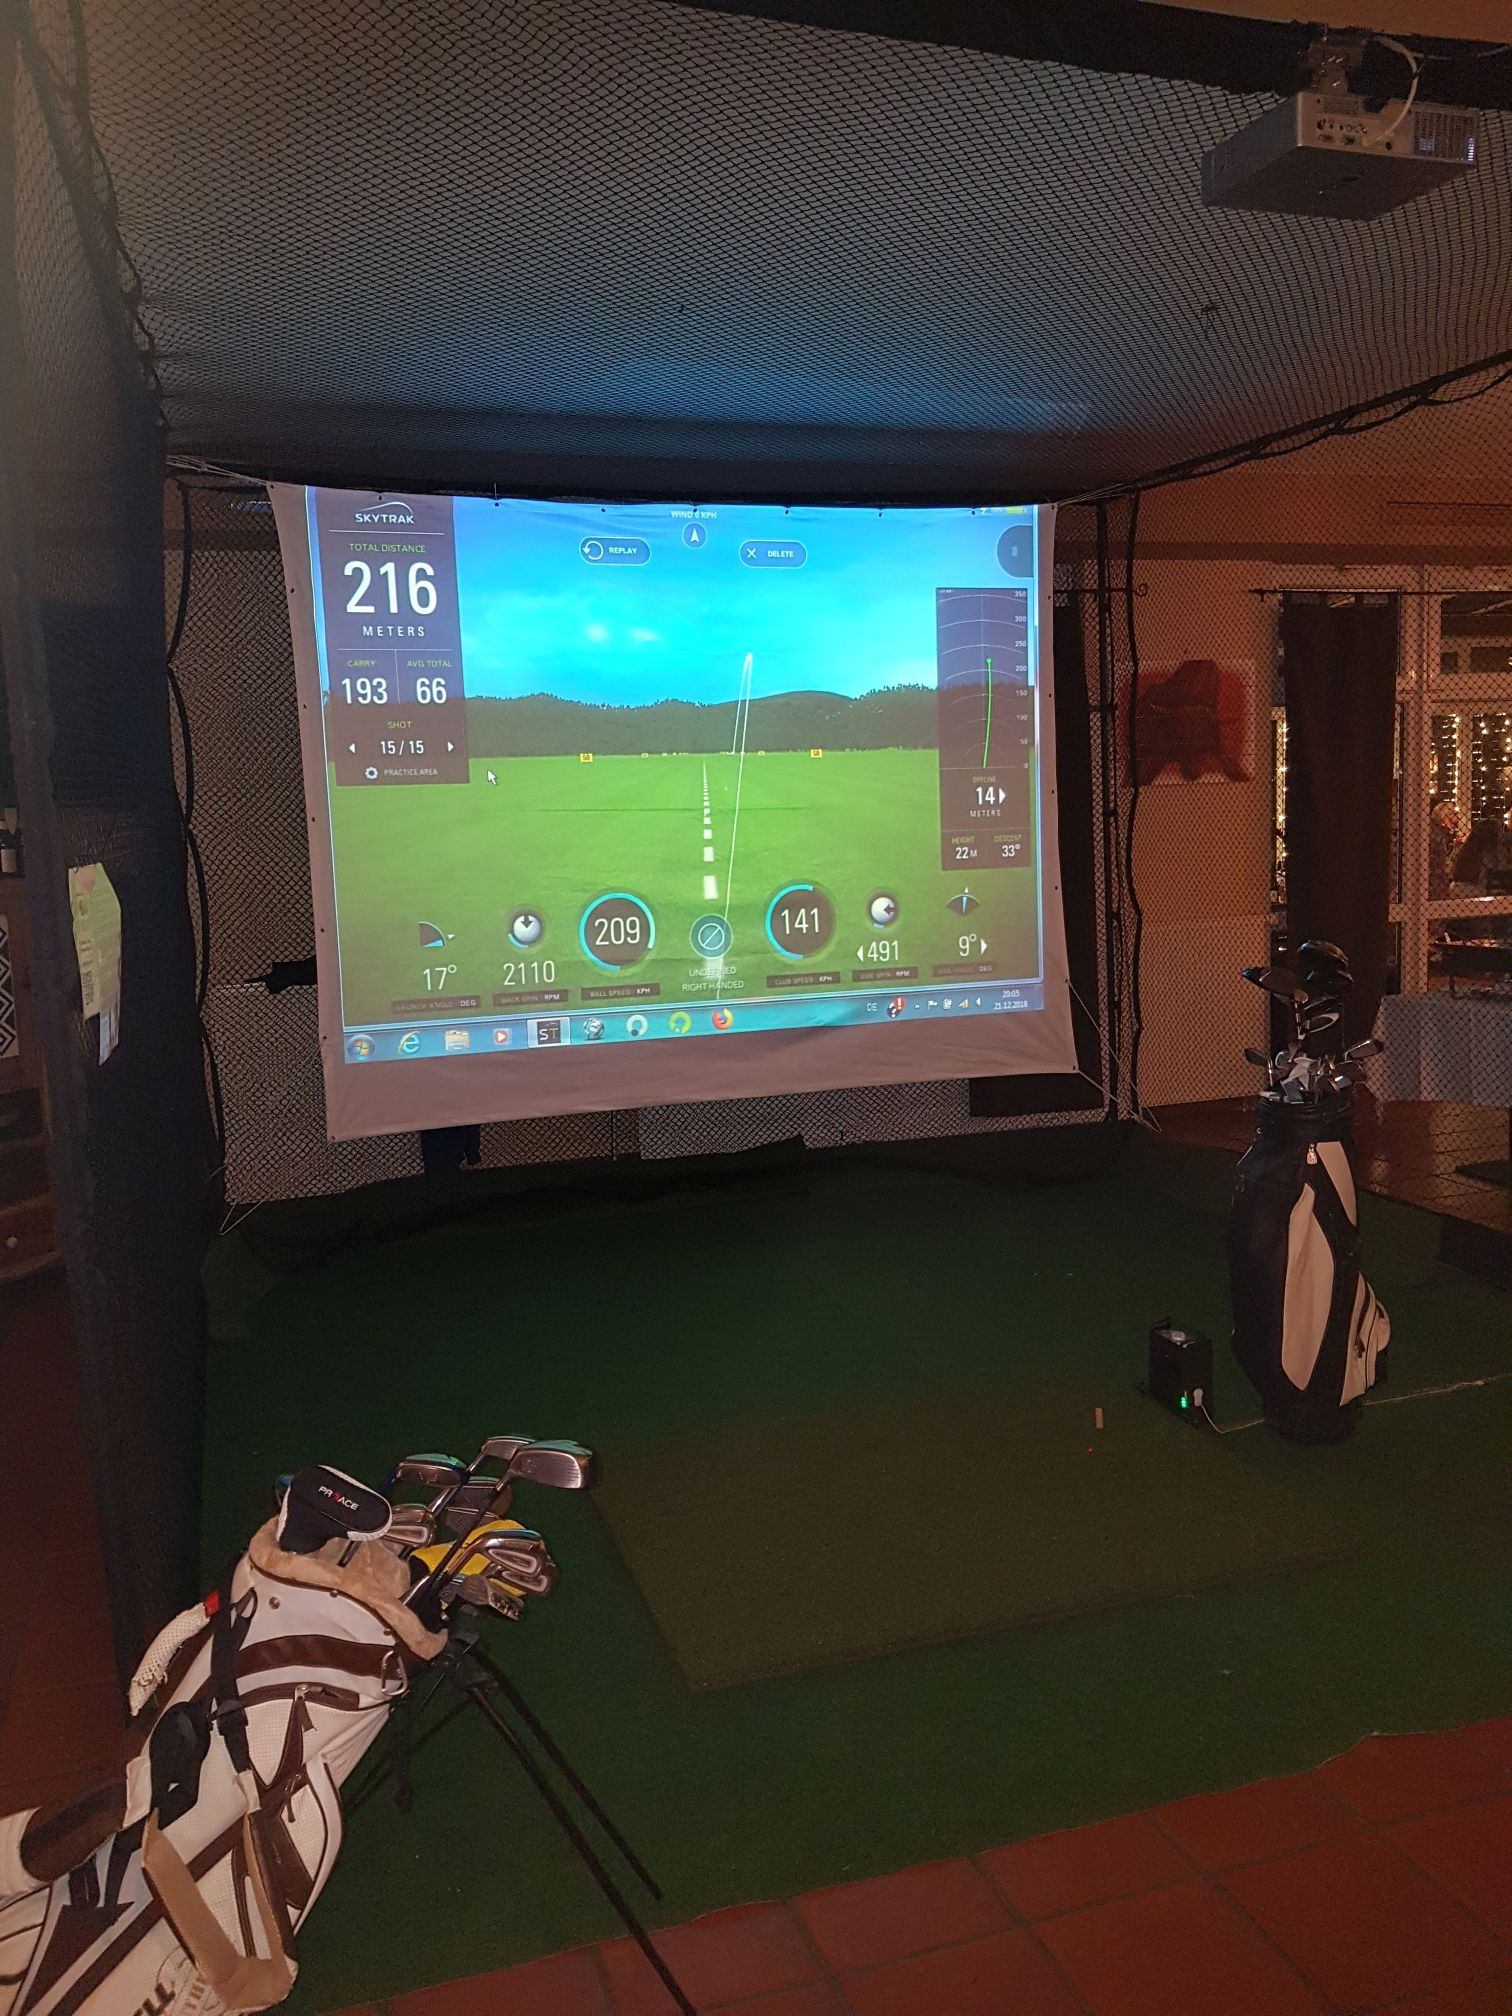 Event Golfsimulator SkyTrak Indoorgolf